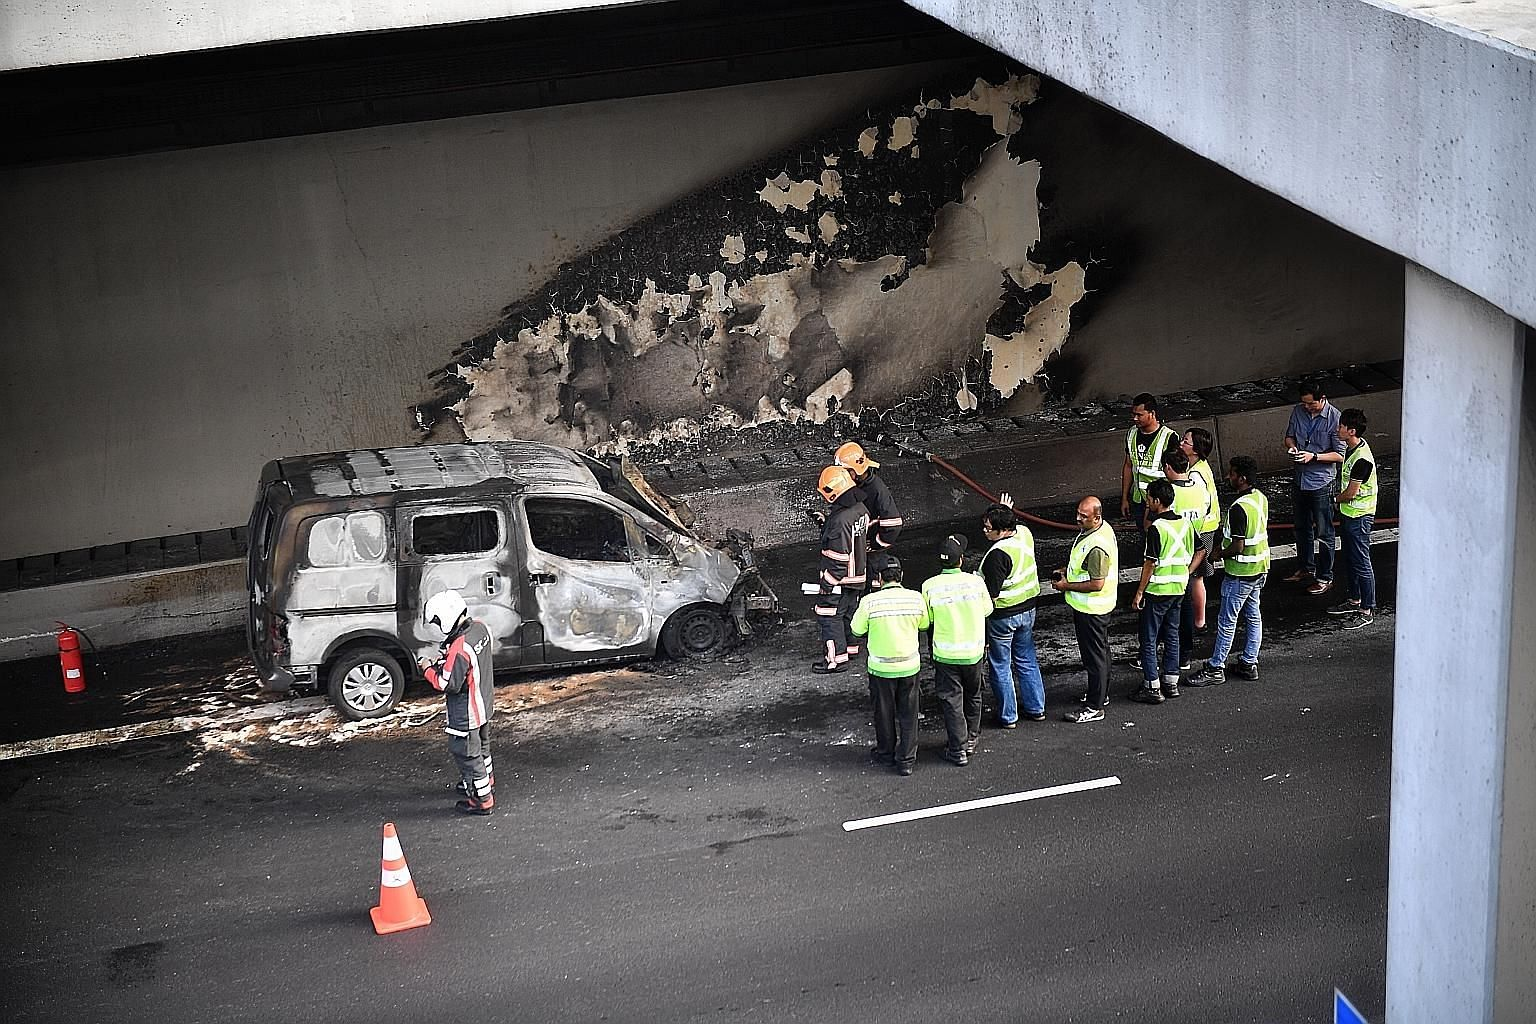 A vehicle caught fire on the Central Expressway (CTE) yesterday evening. The Land Transport Authority (LTA) said in a tweet on its traffic news channel at 5.21pm that there had been an accident in the CTE tunnel towards the Ayer Rajah Expressway, bef